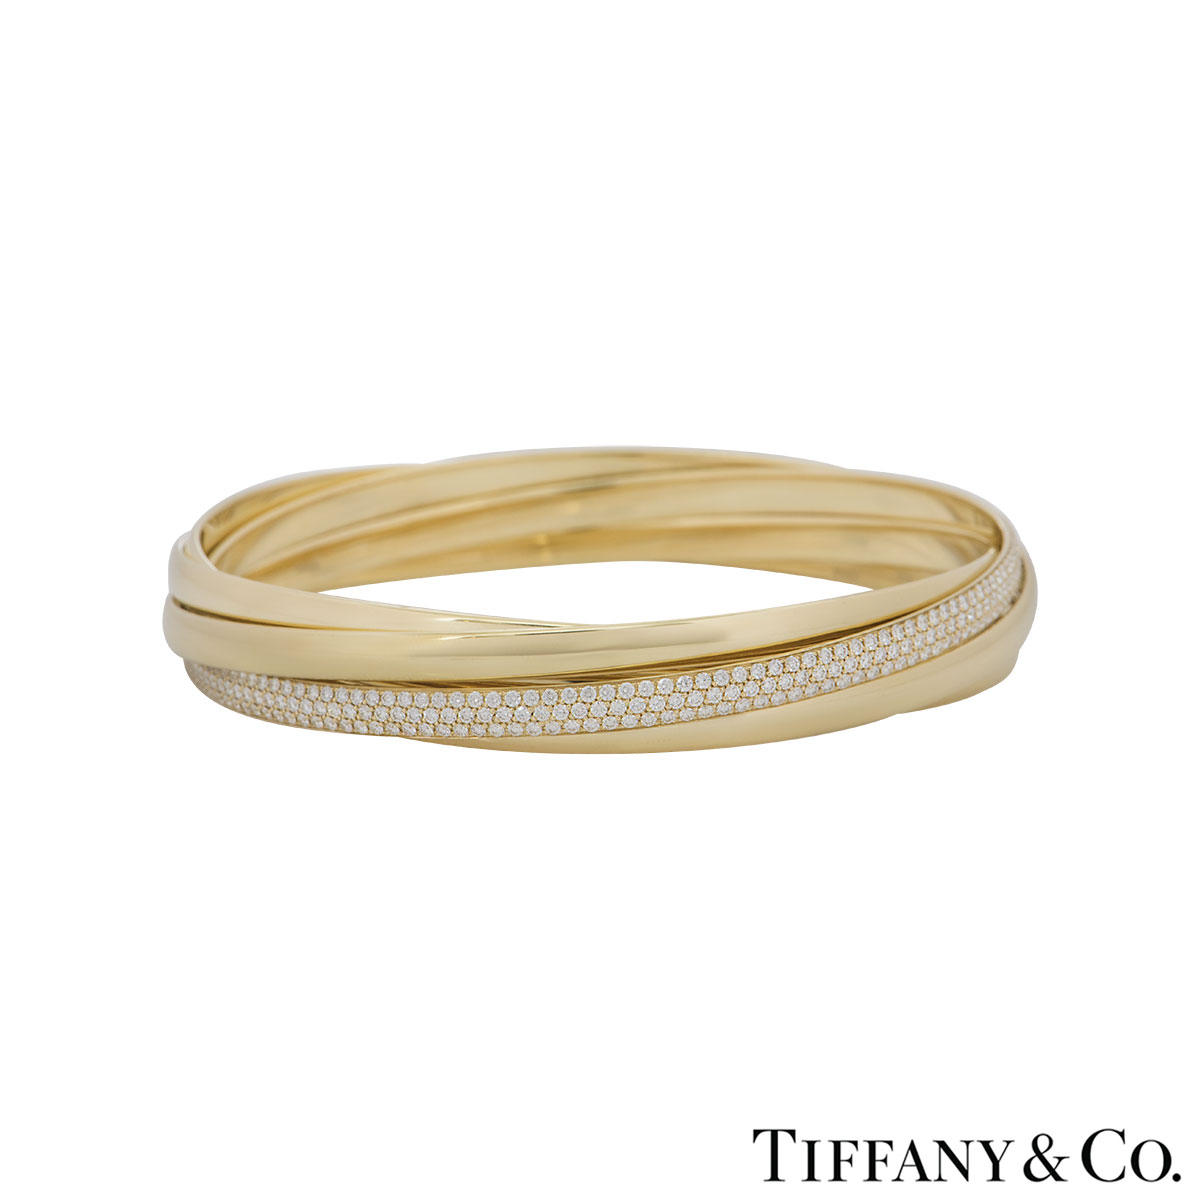 Tiffany & Co. Yellow Gold 5 Band Diamond Paloma's Melody Bangle